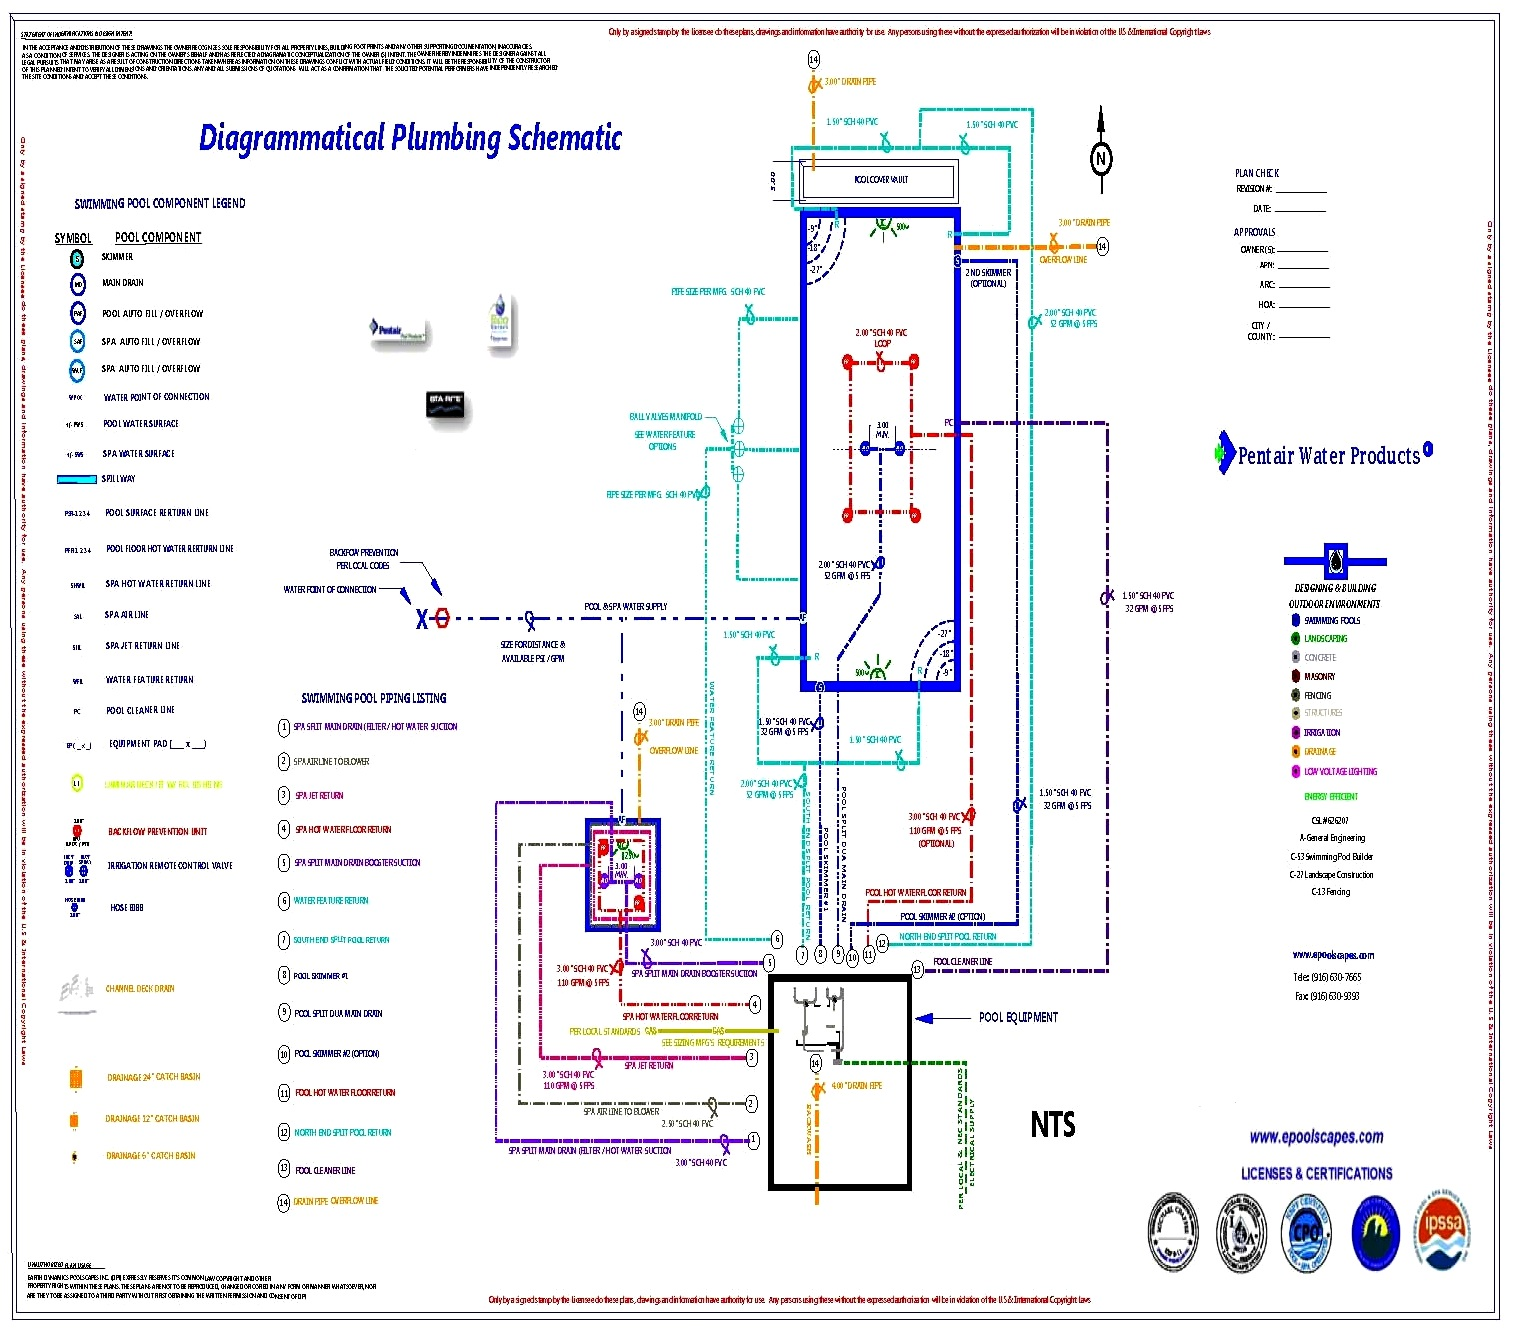 Piping diagram for swimming pool wiring diagram with for Plumbing schematic